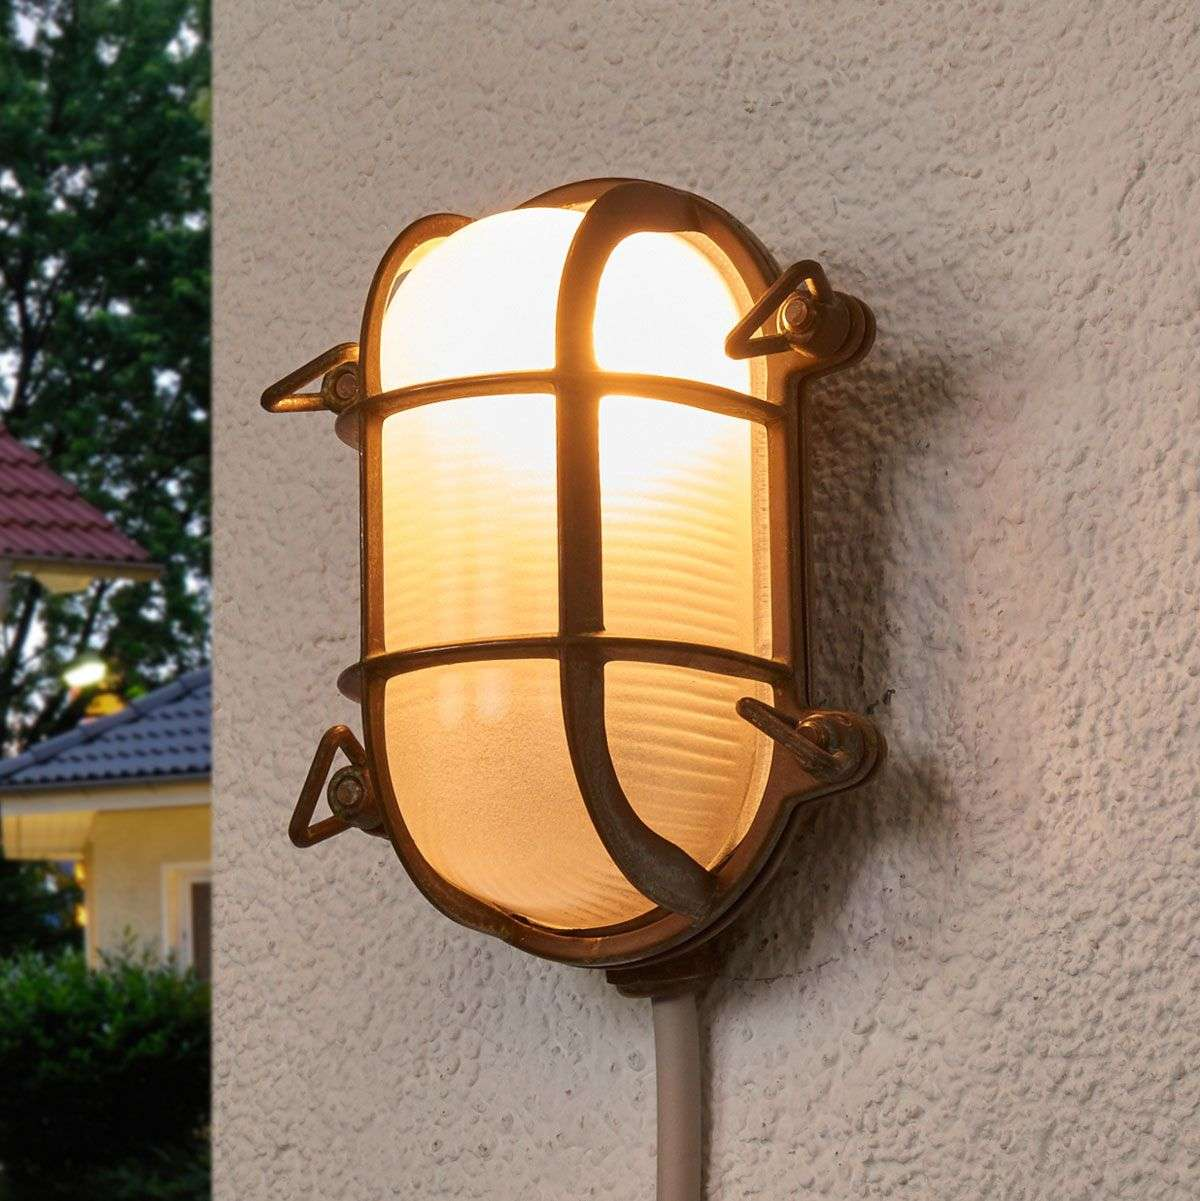 Oval outdoor wall light bengt antique brass lights oval outdoor wall light bengt antique brass 6515265 31 aloadofball Choice Image